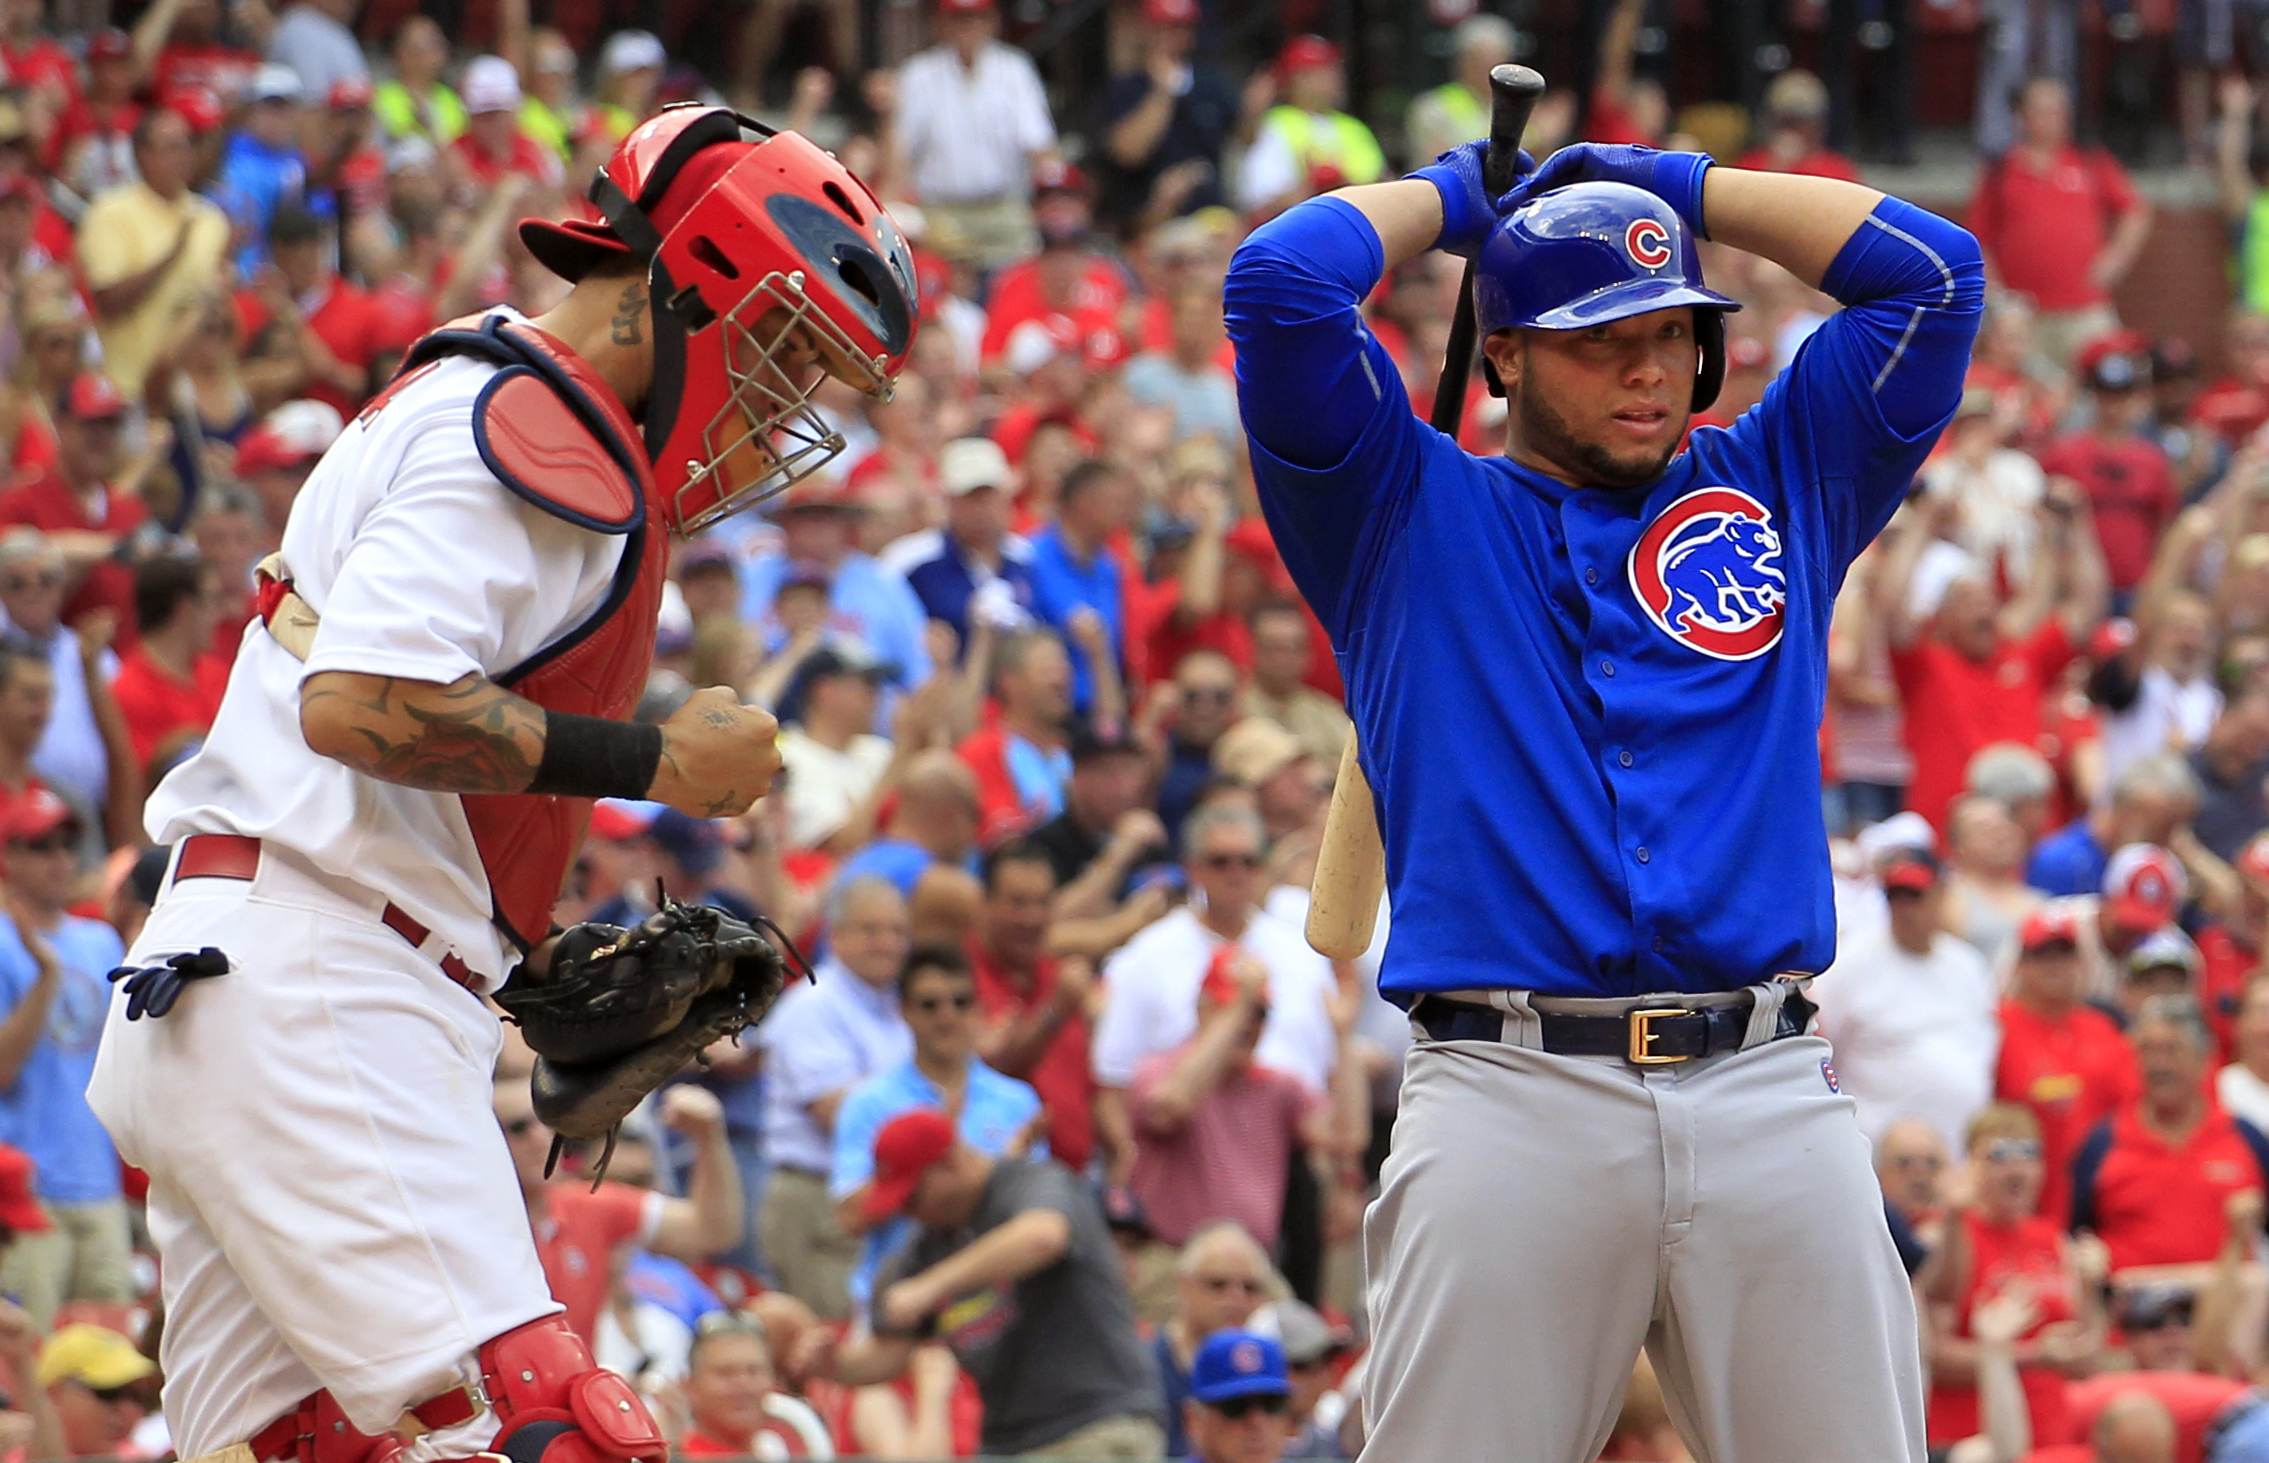 St. Louis Cardinals catcher Yadier Molina, left, pumps his fist as Chicago Cubs' Welington Castillo stands at the plate after Castillo was called out on strikes to end a baseball game Thursday, May 7, 2015, in St. Louis. The Cardinals won 5-1. (AP Photo/J